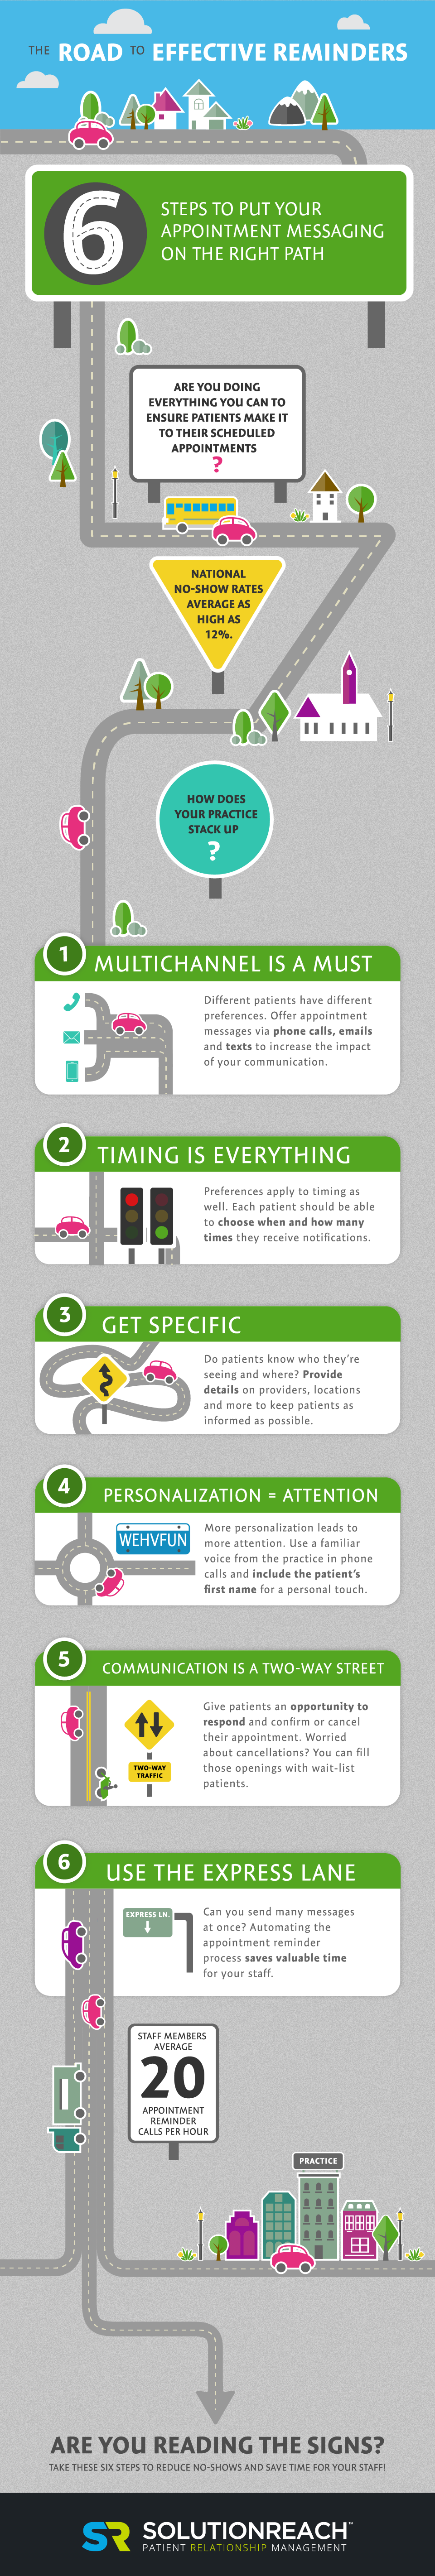 Effective ways to use patient reminders